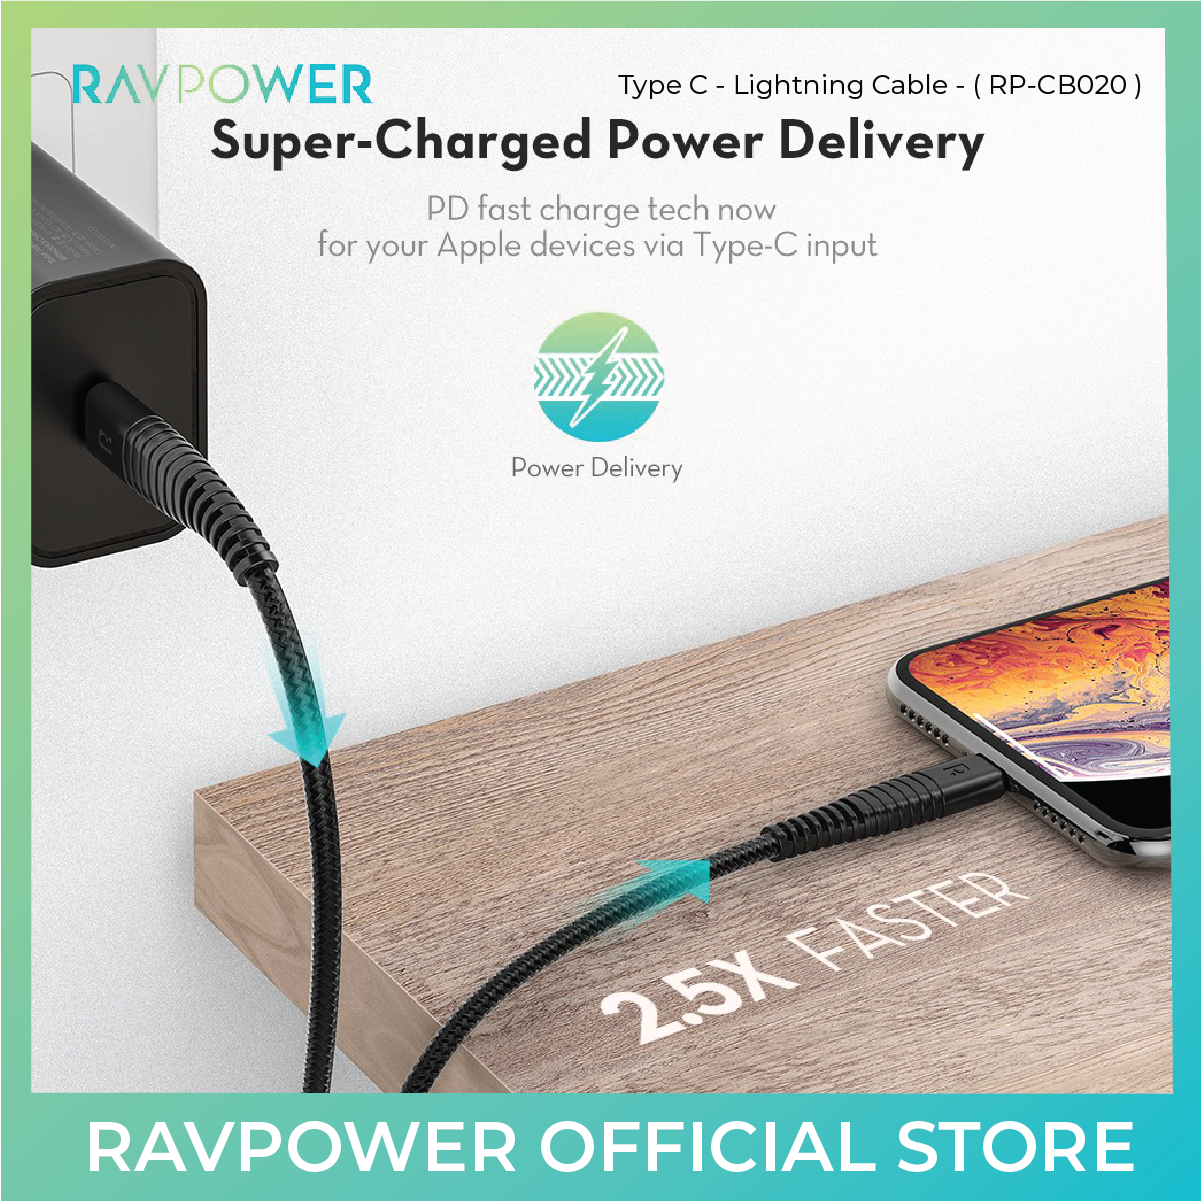 RAVPower Type C - Lightning Cable for iPhone (RP-CB020) - 3.3 Ft